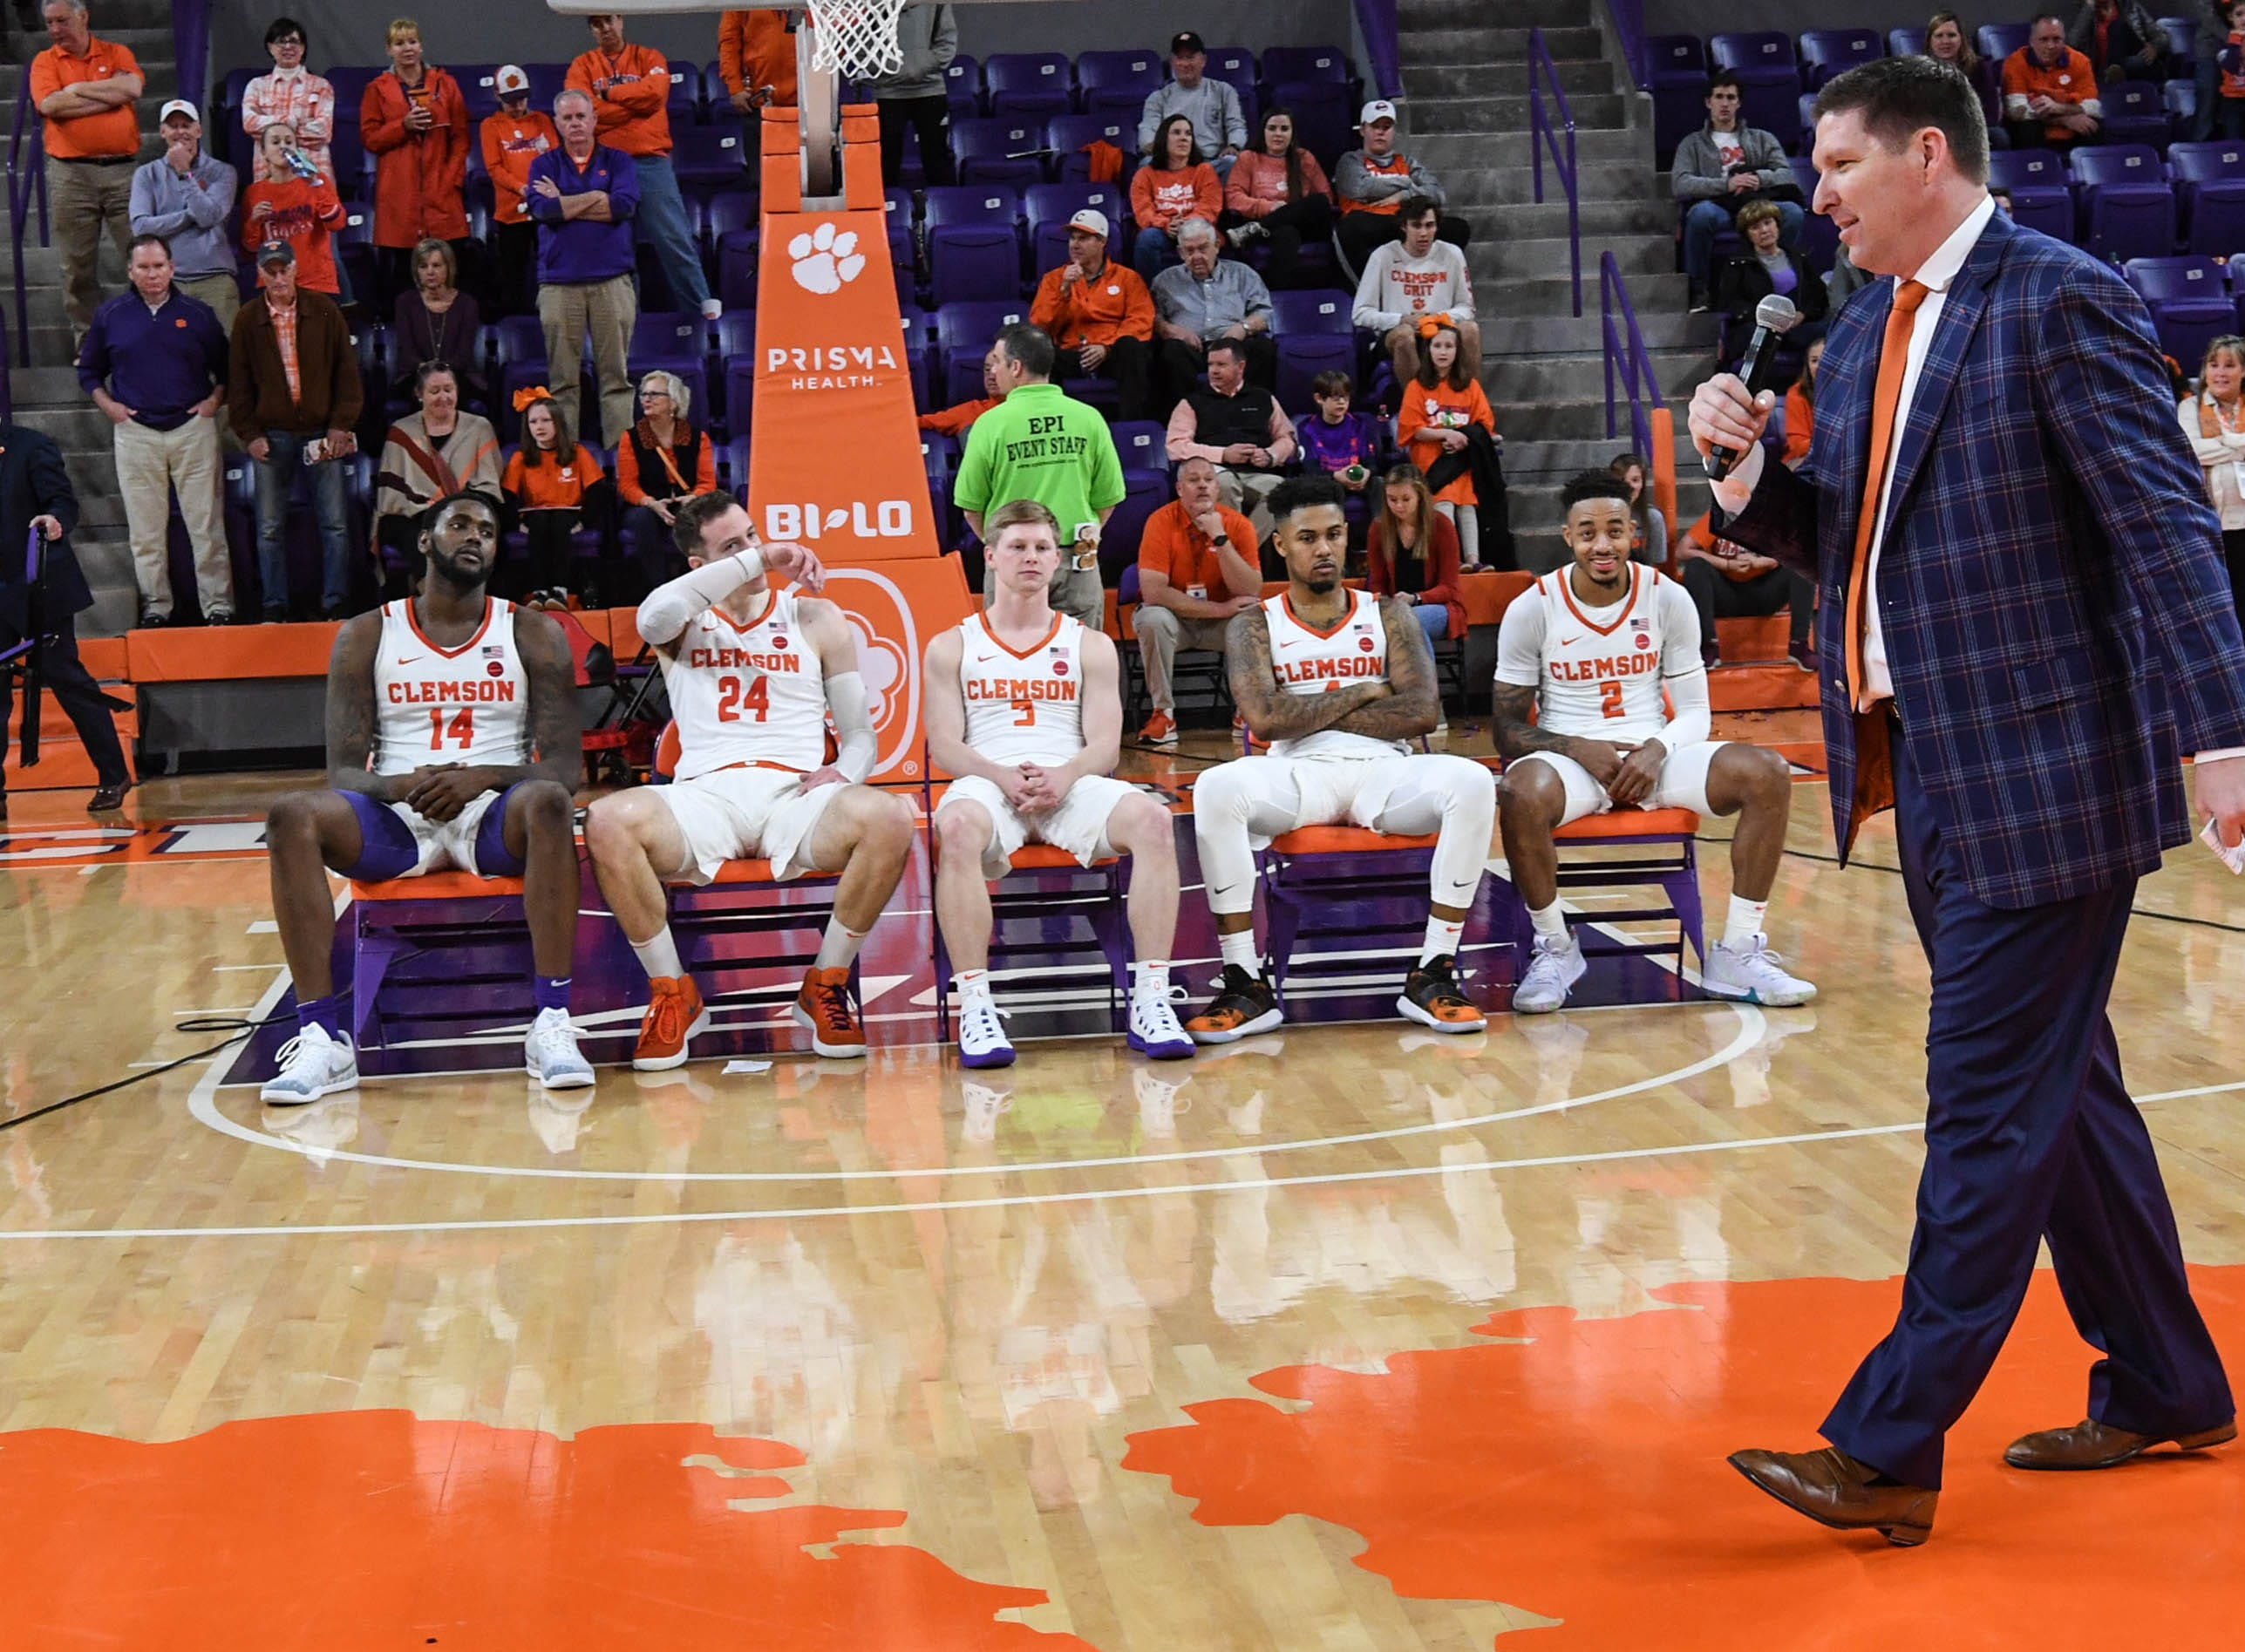 Clemson head coach Brad Brownell talks about his five seniors after a 67-55 win over Syracuse in Littlejohn Coliseum Saturday, March 9, 2019. From left, Clemson forward Elijah Thomas (14), forward David Skara (24), guard Lyles Davis (3), guard Shelton Mitchell (4), and guard Marcquise Reed (2) watch.